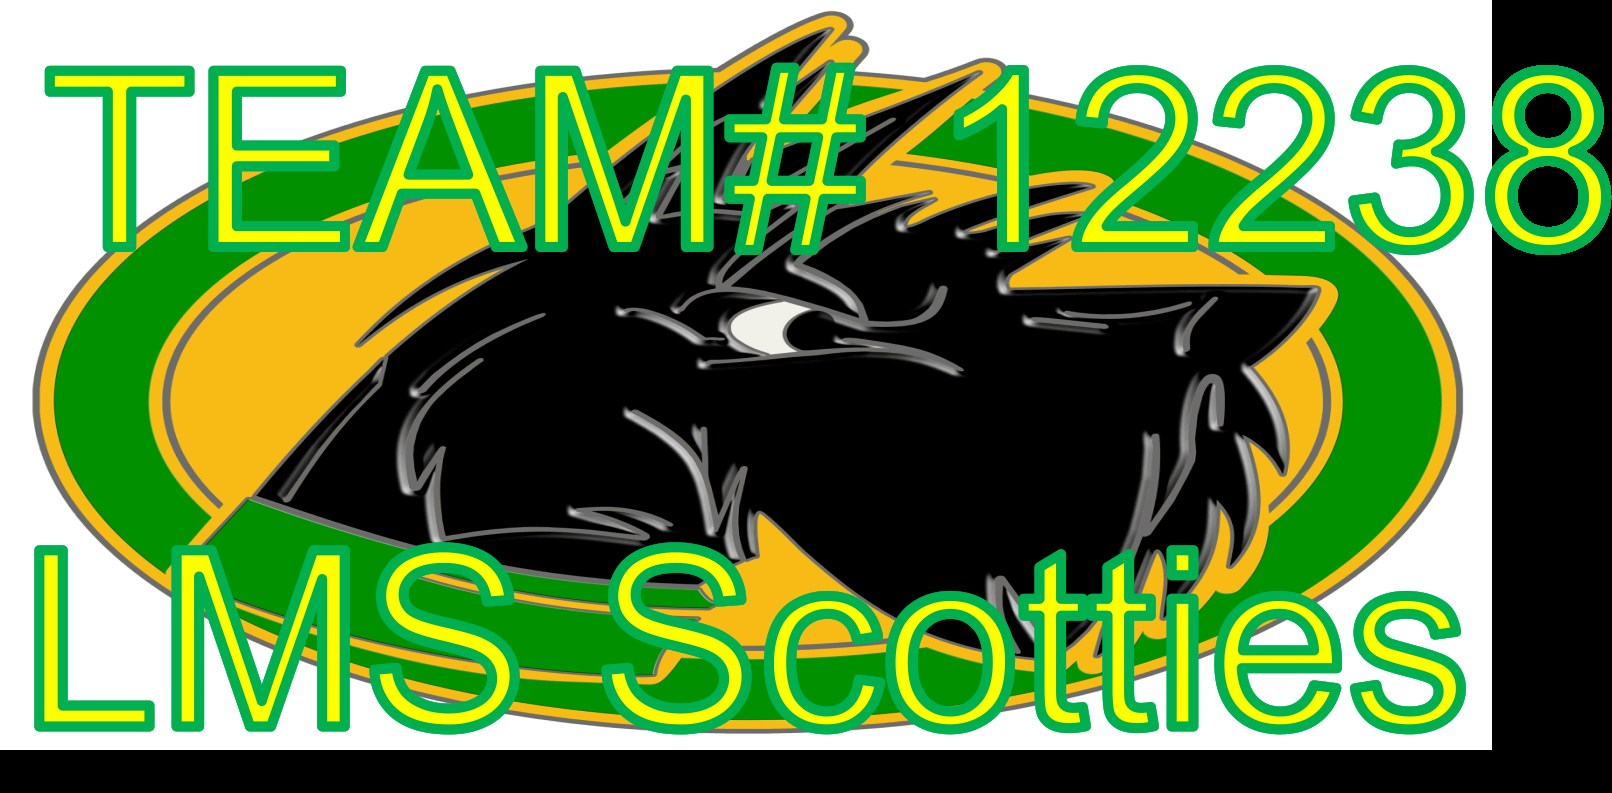 Team #12238 LMS Scotties